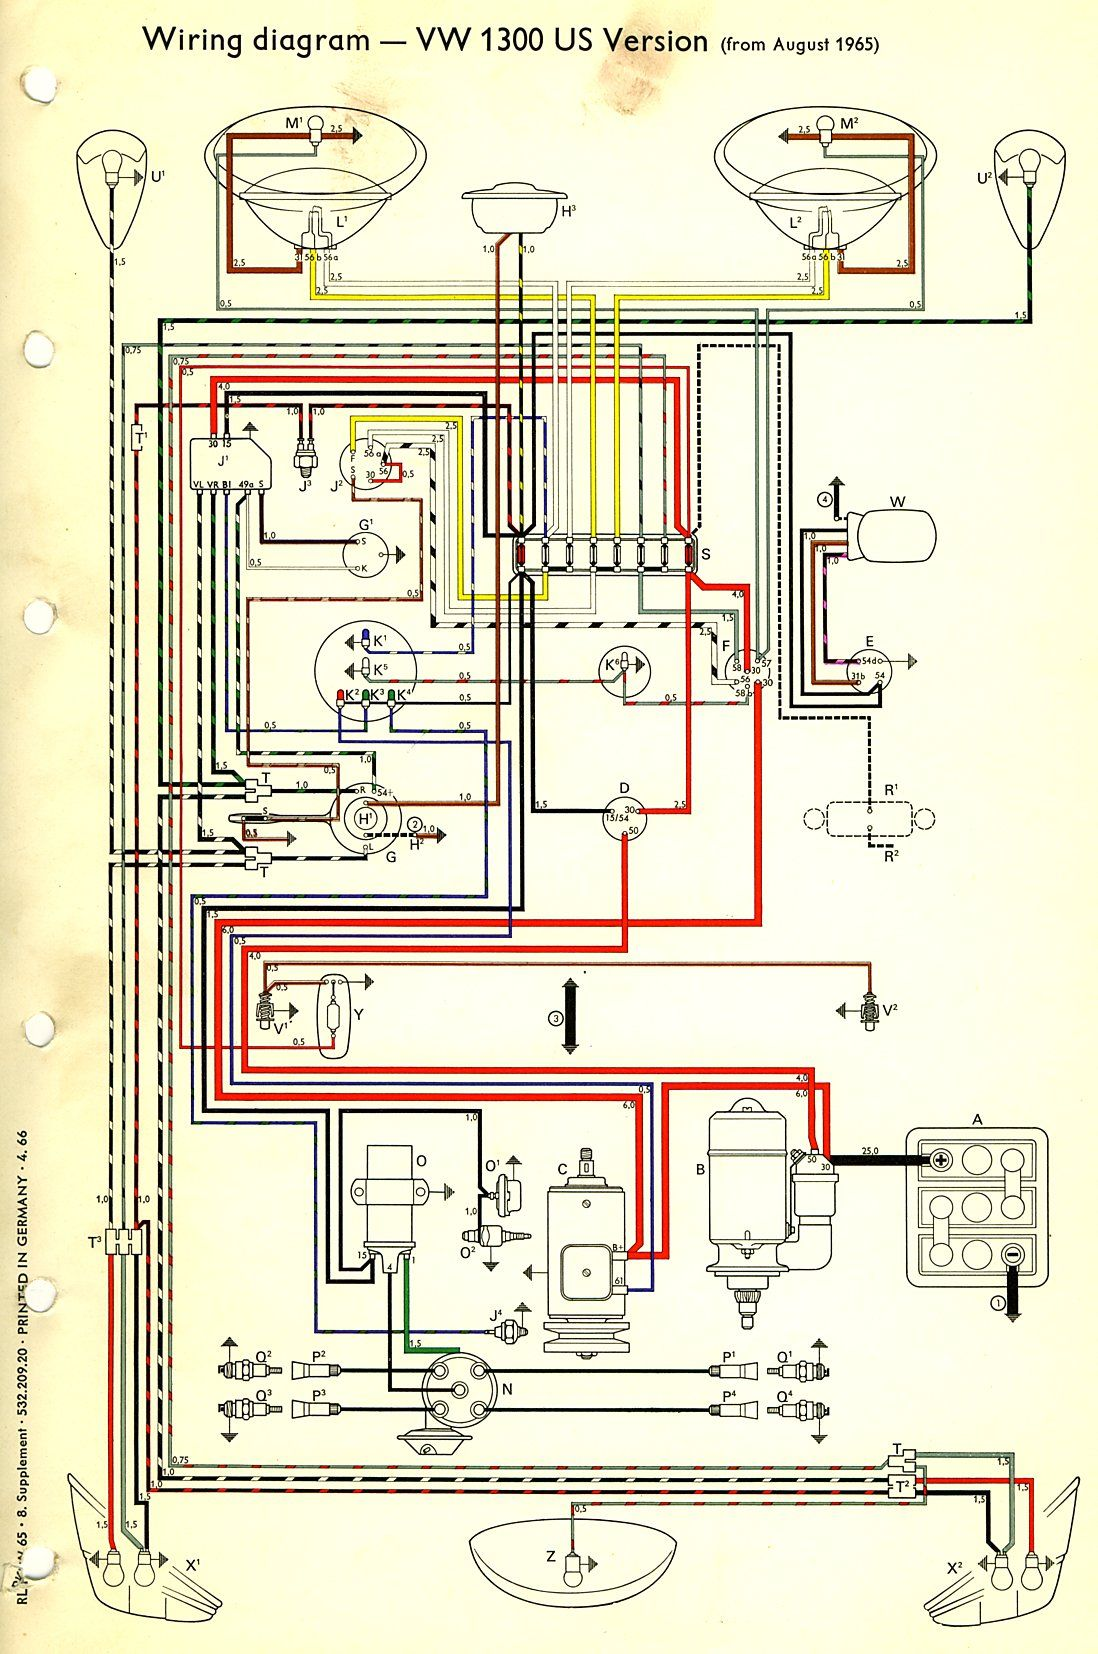 69 Vw Bug Coil Wiring Diagram Will Be A Thing 1970 Volkswagen Beetle Dune Buggy Schematic Simple Rh David Huggett Co Uk